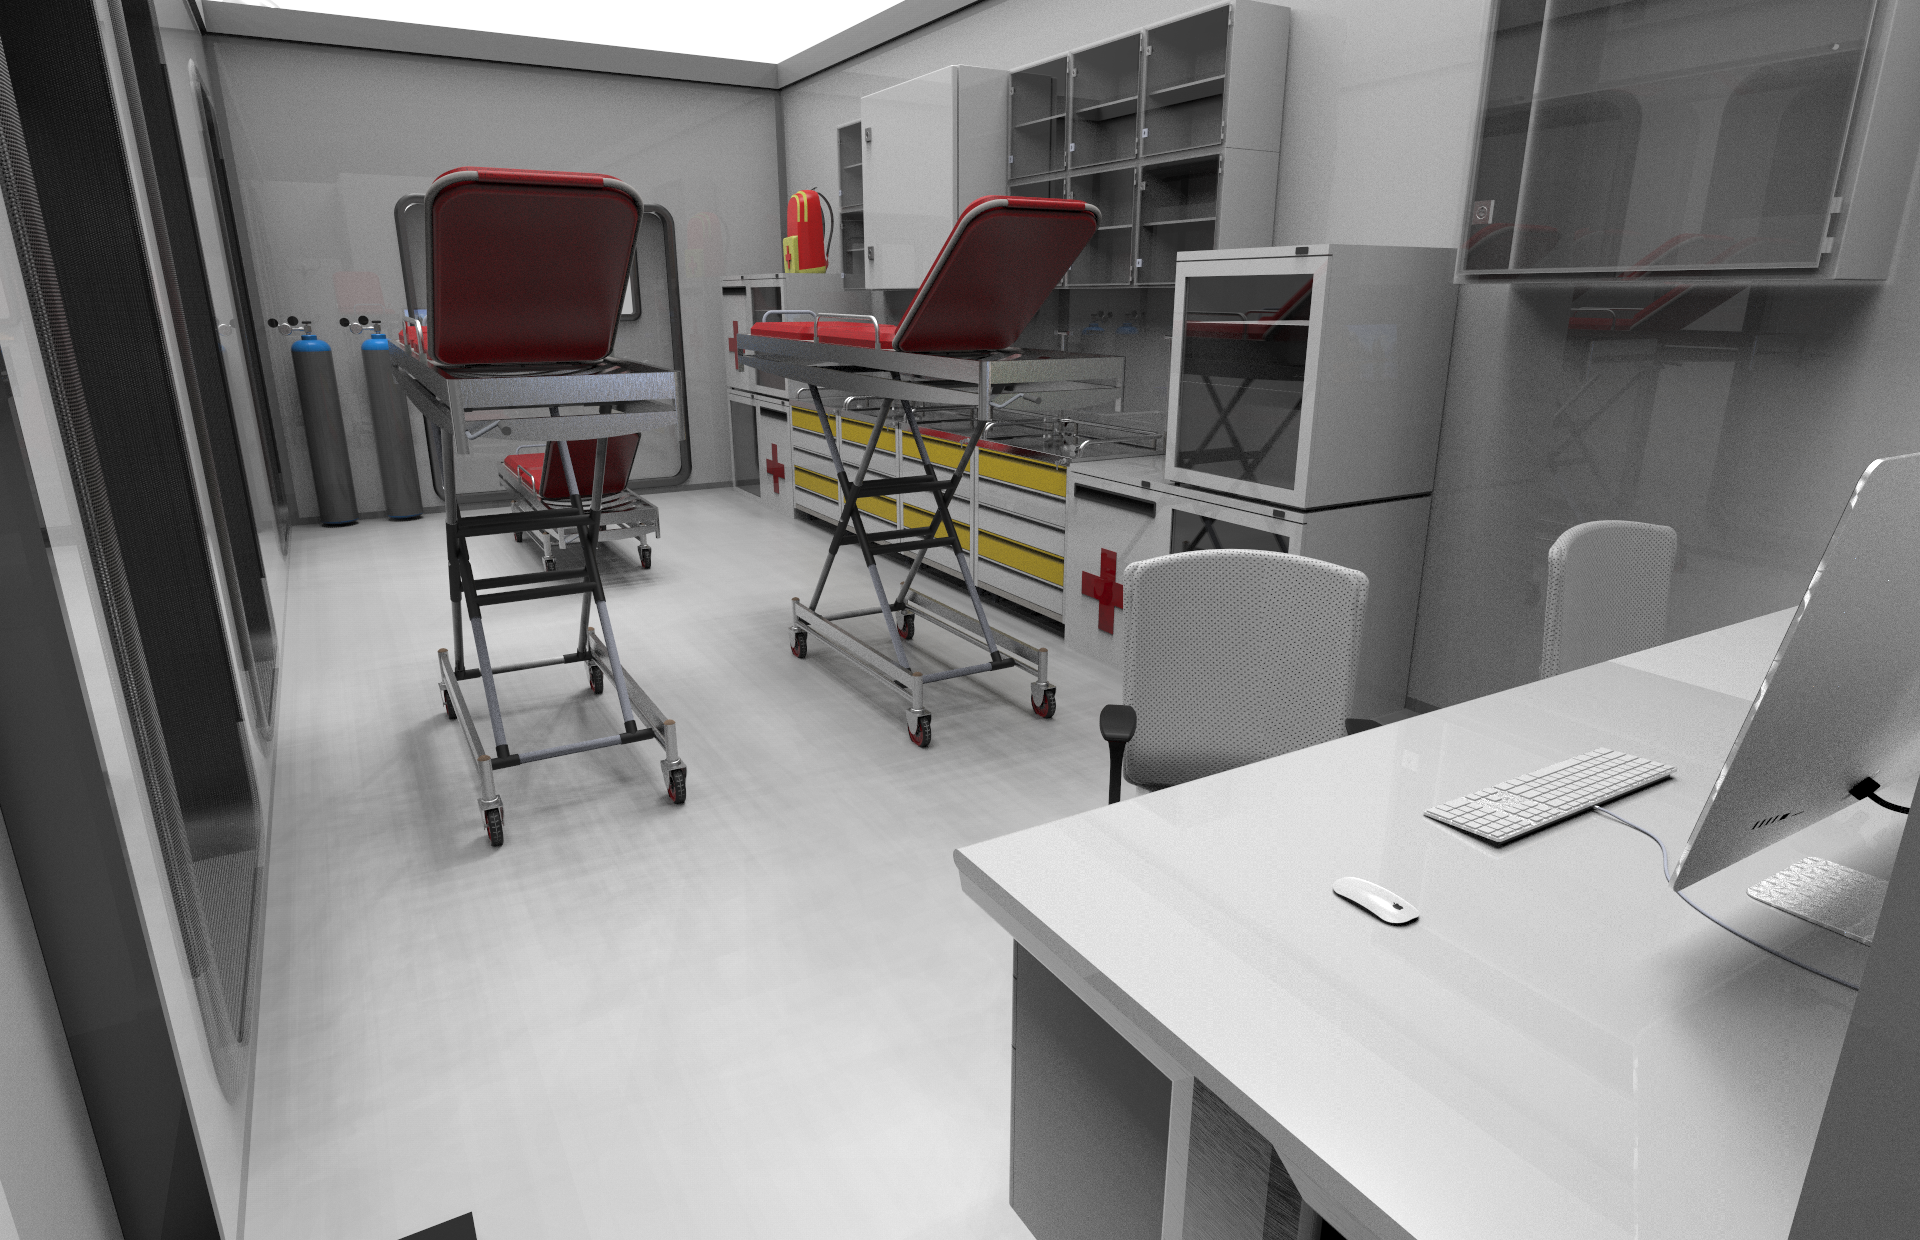 ambulance_International_movement_interior-0.463